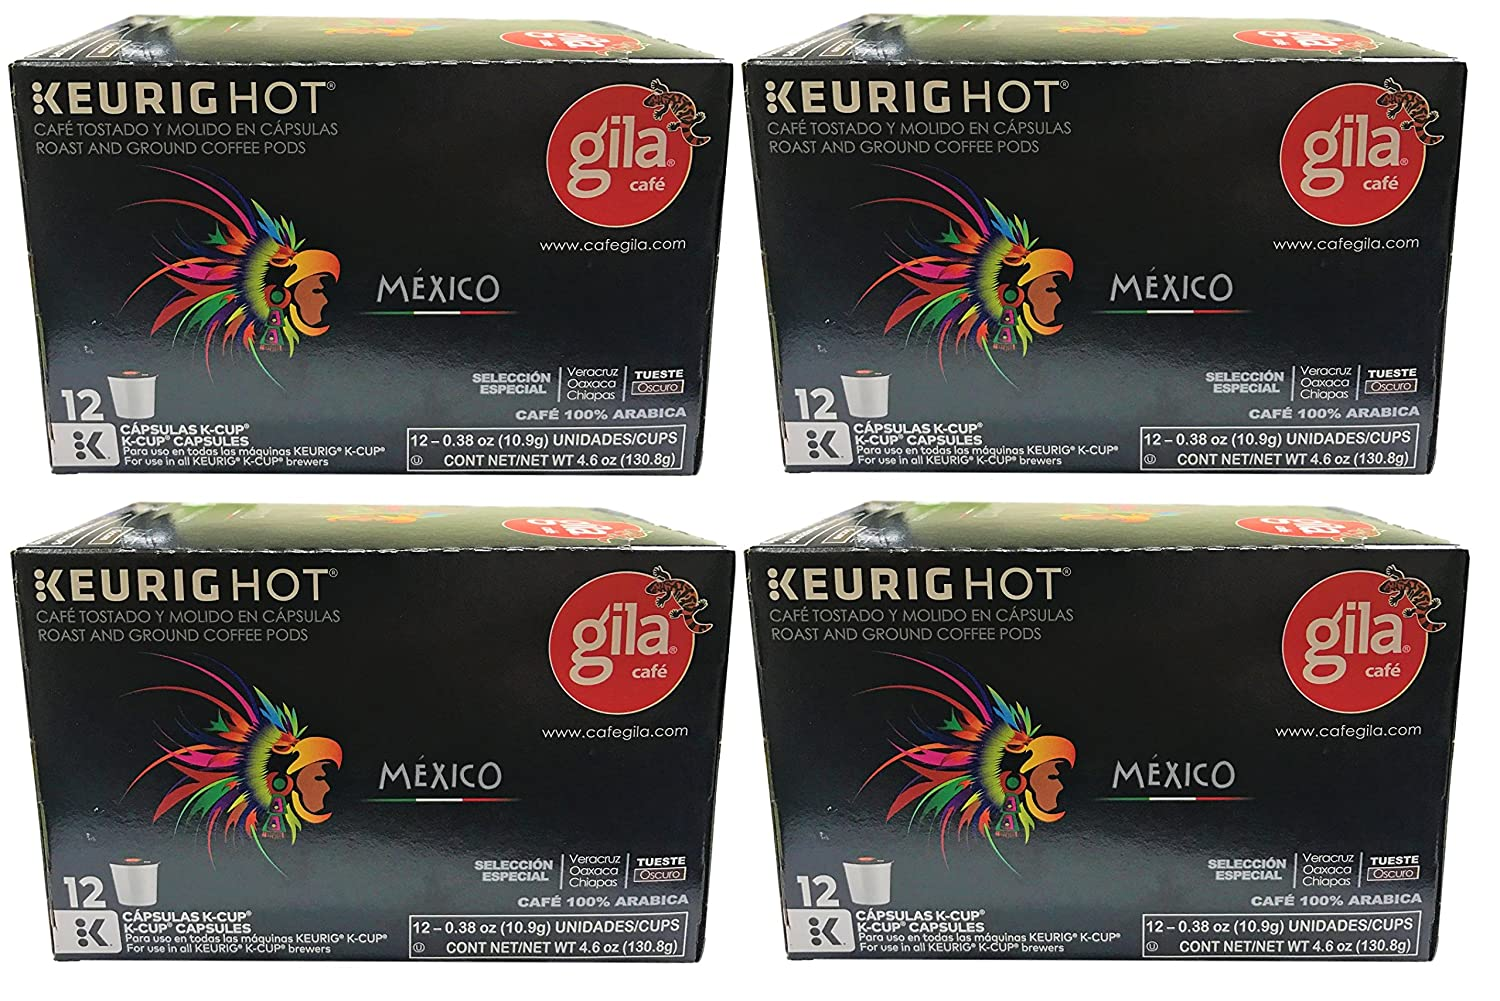 Café Gila Mexico Blend Coffee Single Serve Pods, 12 Count Box (48 Pods): Amazon.com: Grocery & Gourmet Food